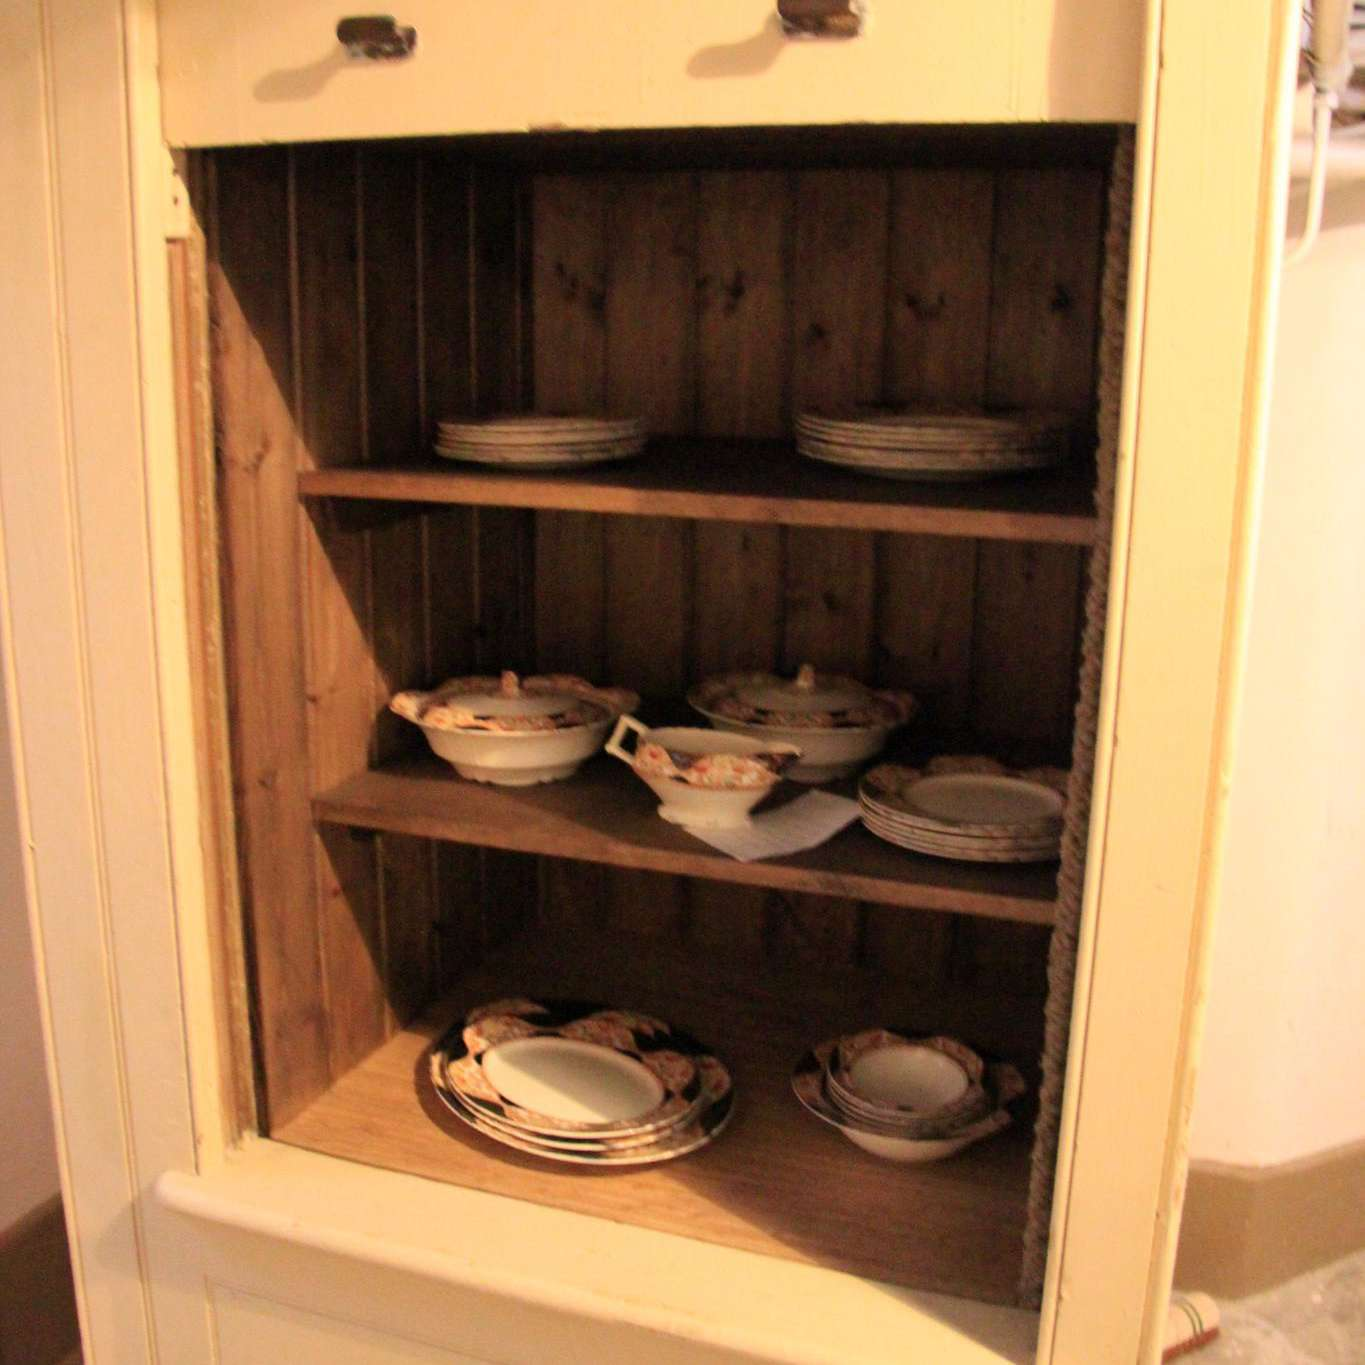 Vintage dumbwaiter in a stately home